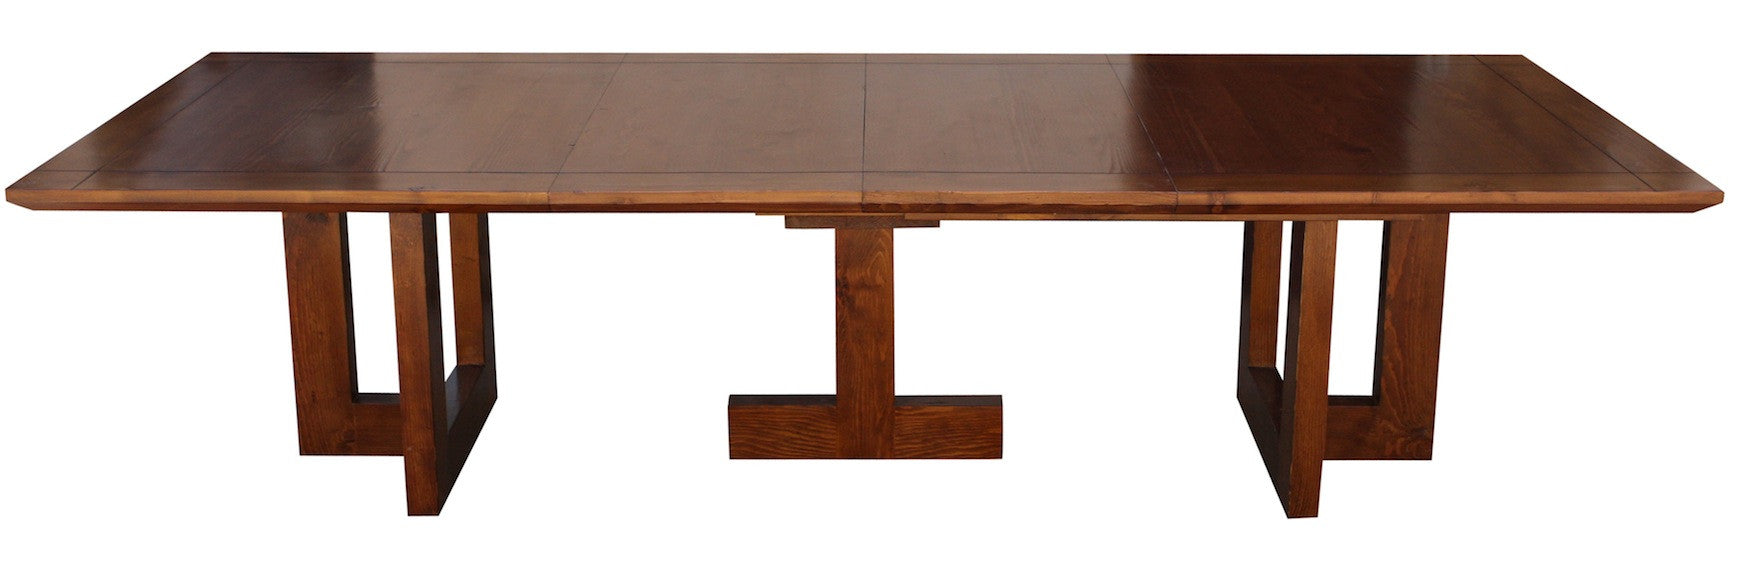 MidCentury Modern Metro Extension Trestle Dining Table Mortise